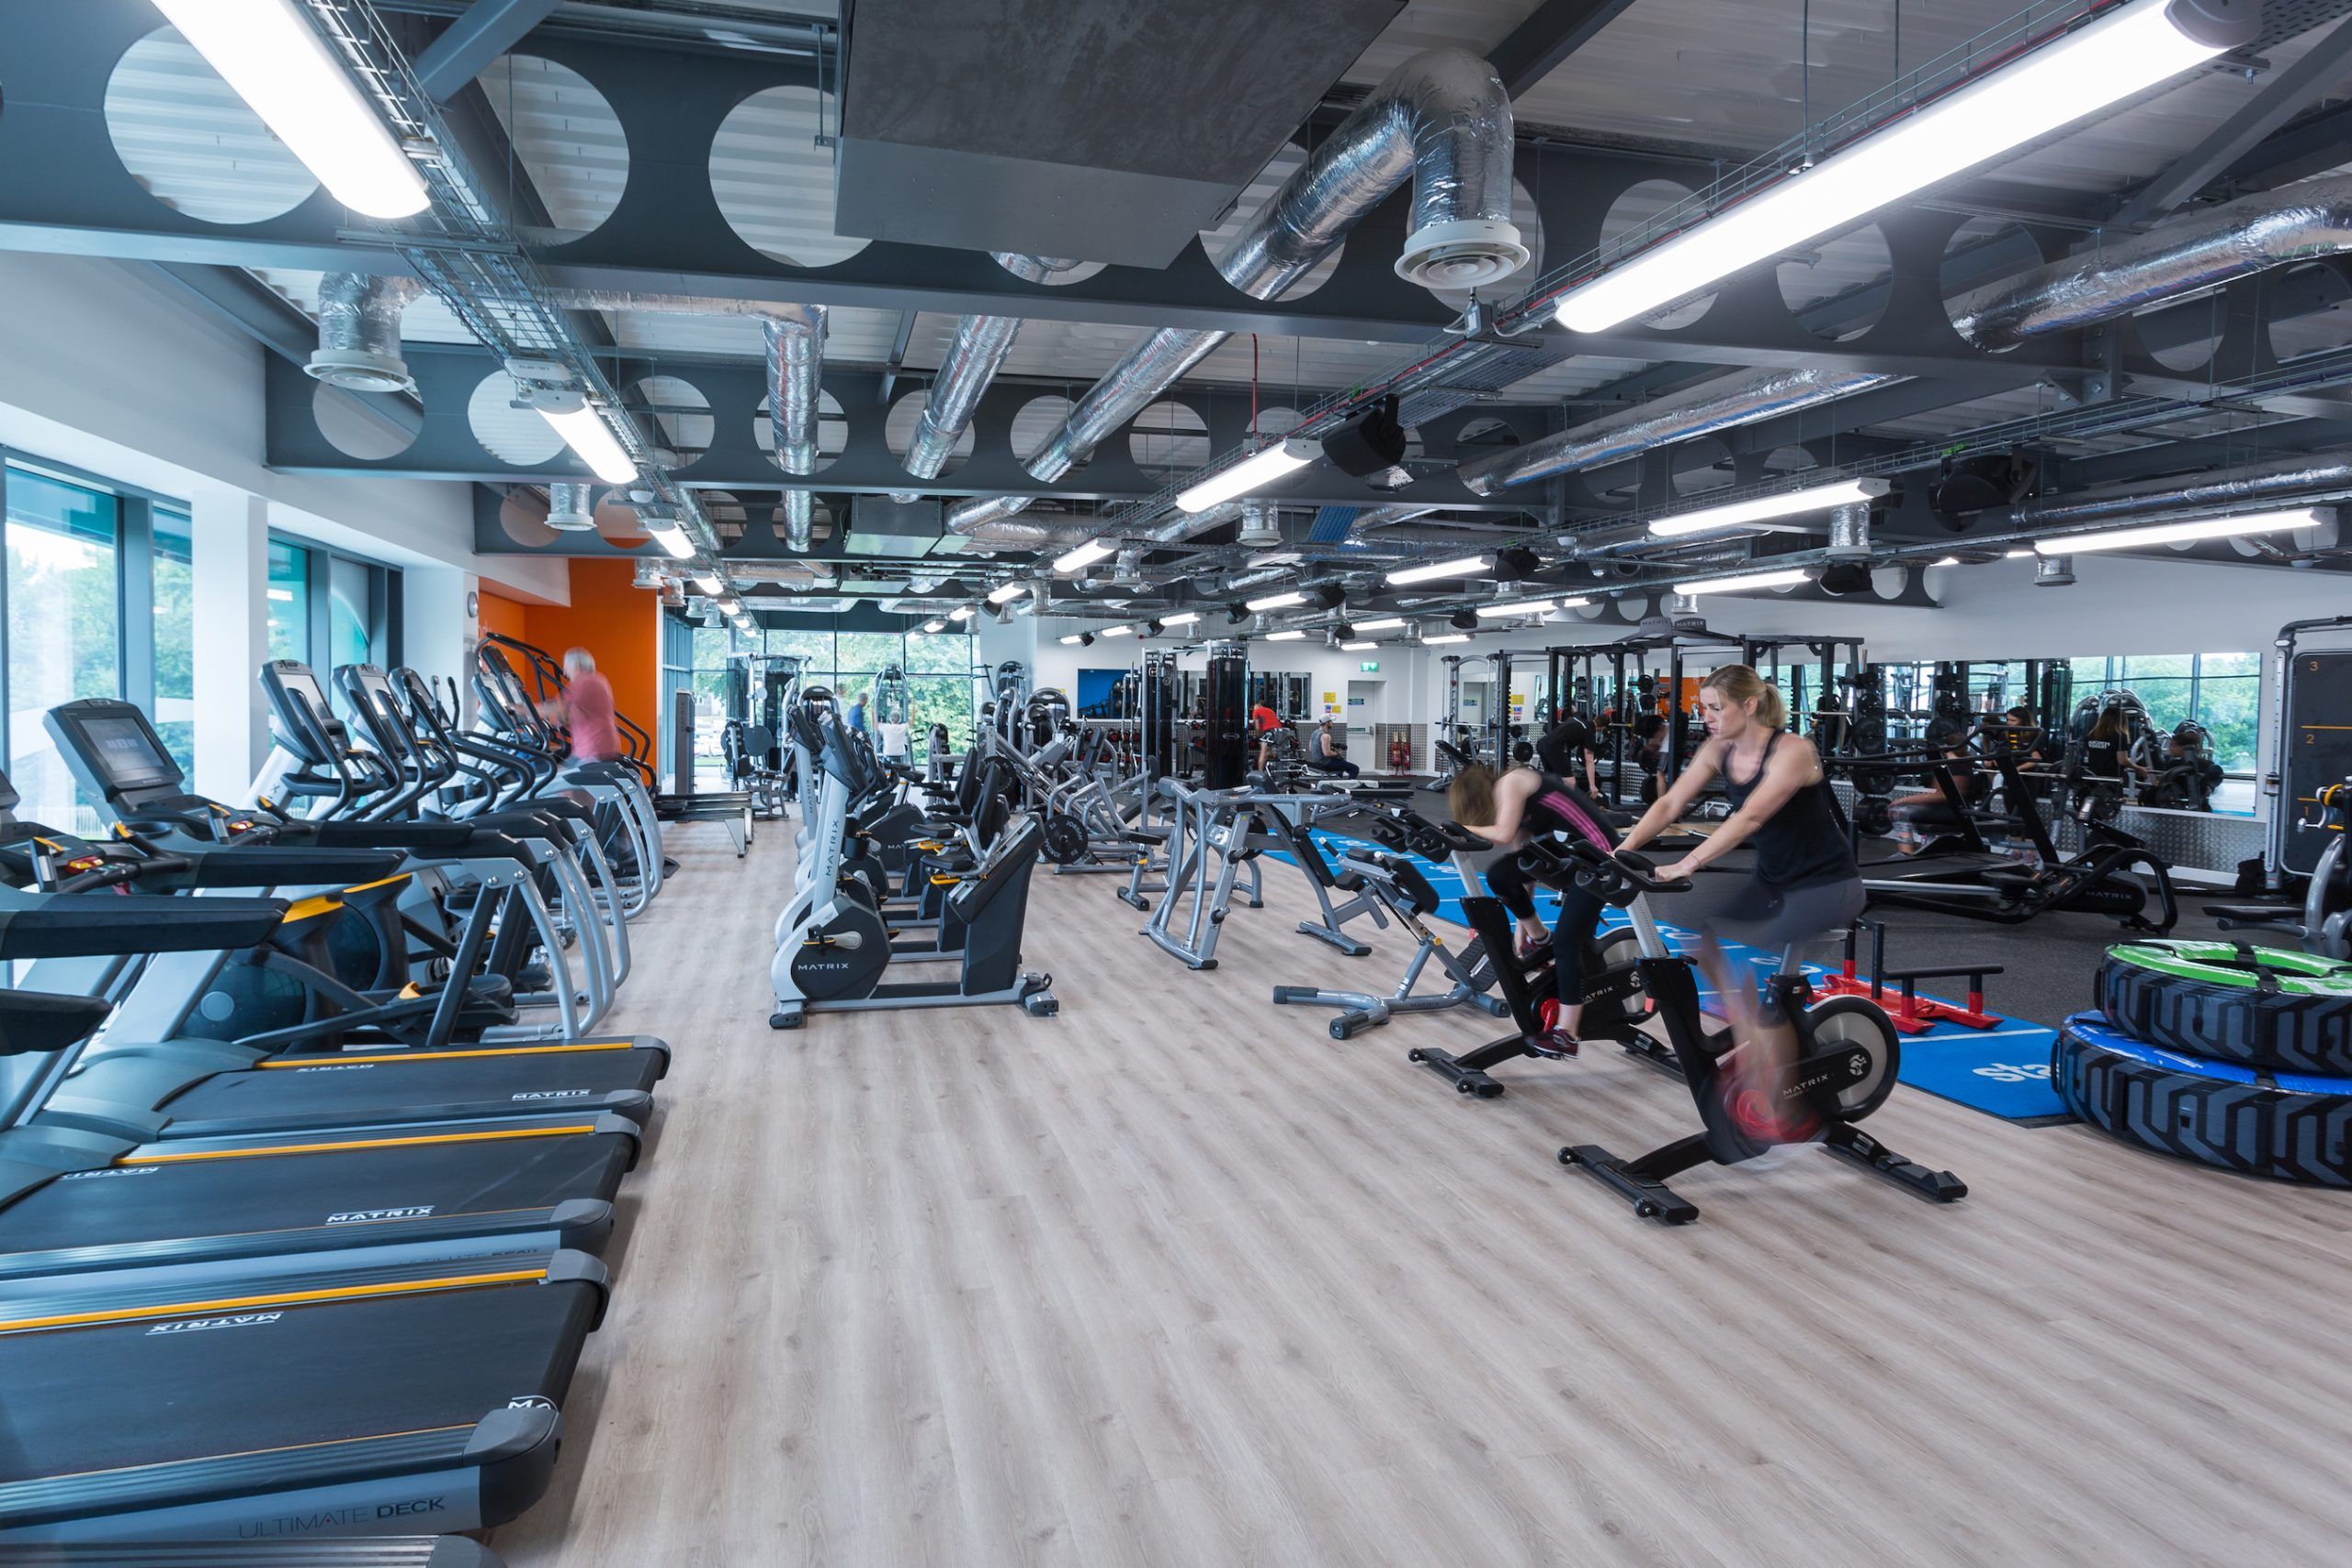 RENOVATION RESULTS IN RECORD MEMBERSHIP UPLIFT AT LONG STRATTON LEISURE CENTRE